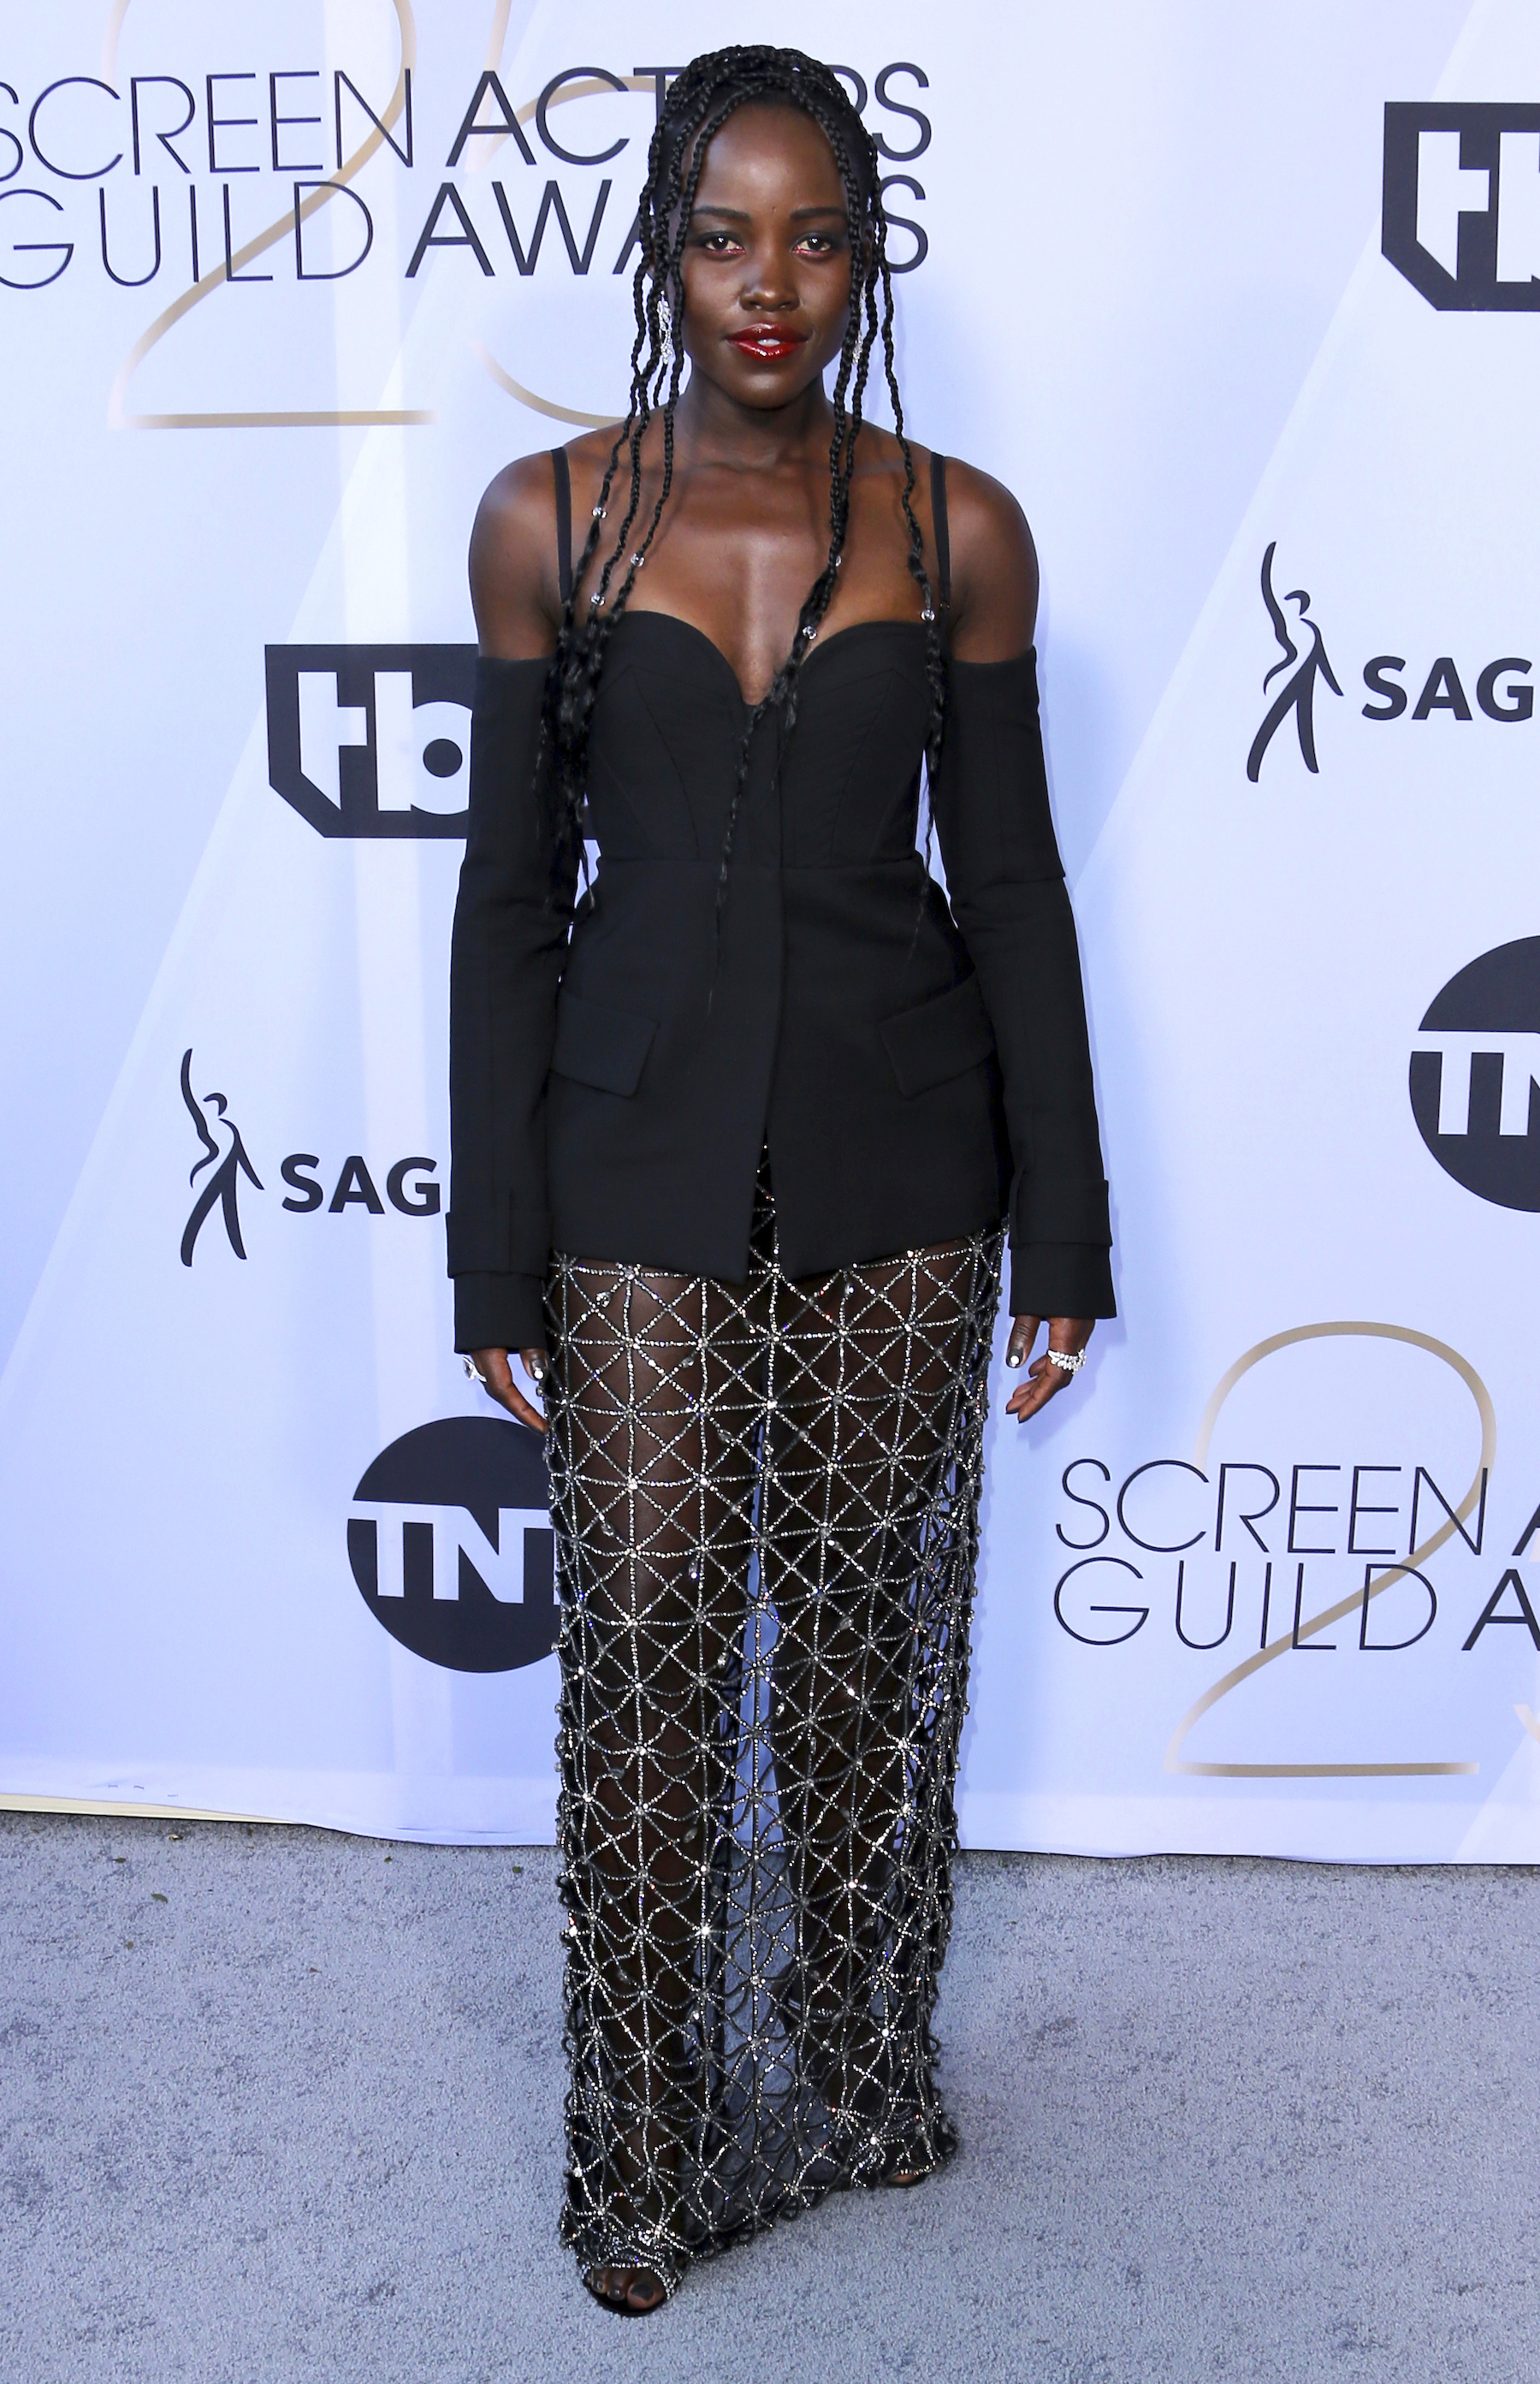 <div class='meta'><div class='origin-logo' data-origin='AP'></div><span class='caption-text' data-credit='Willy Sanjuan/Invision/AP'>Lupita Nyong'o arrives at the 25th annual Screen Actors Guild Awards at the Shrine Auditorium & Expo Hall on Sunday, Jan. 27, 2019, in Los Angeles.</span></div>